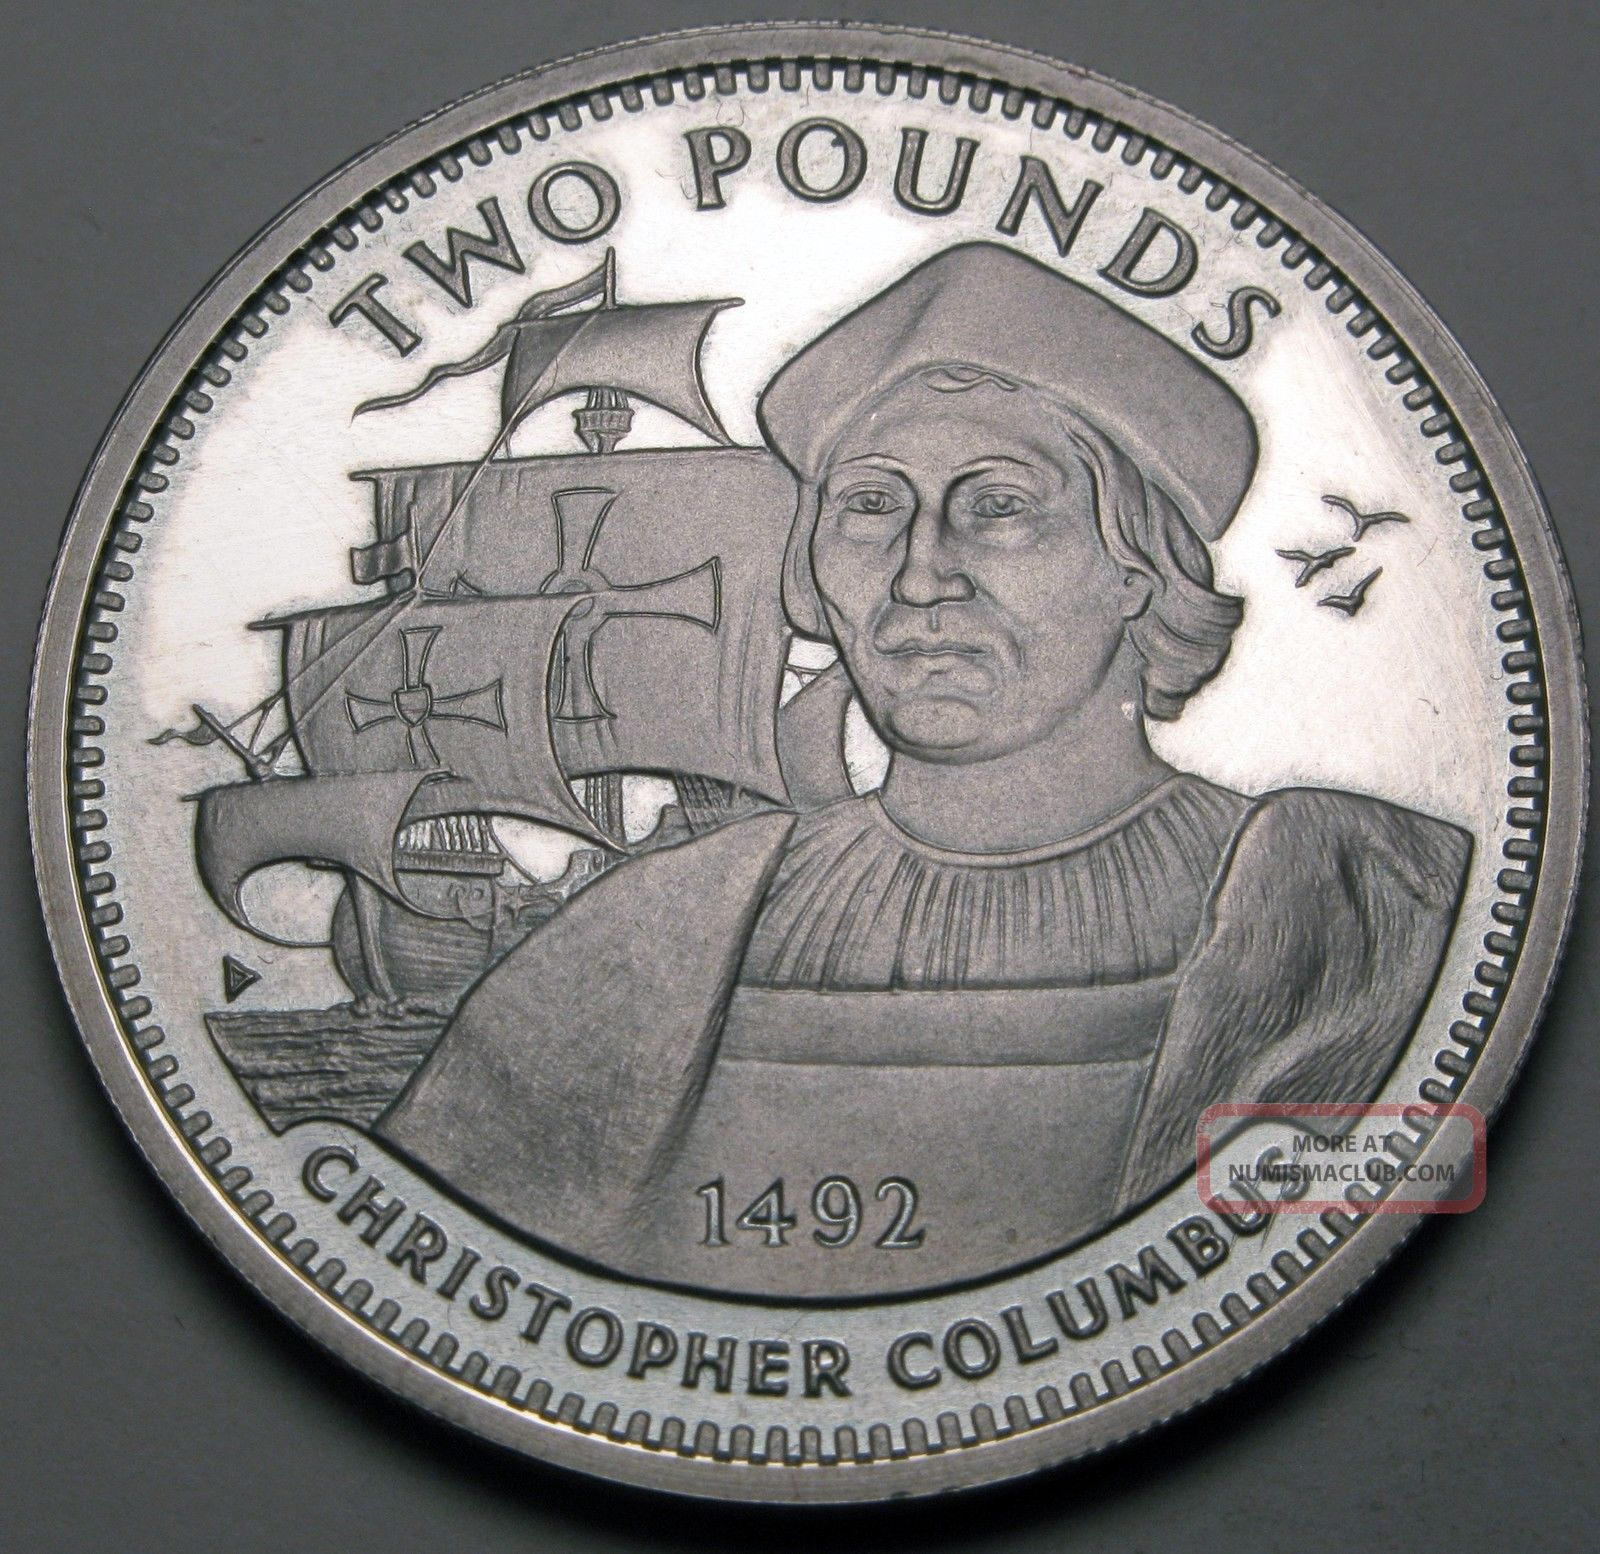 Gibraltar 2 Pounds 1992 Proof - Silver - Columbus - Elizabeth Ii.  - 120 Europe photo